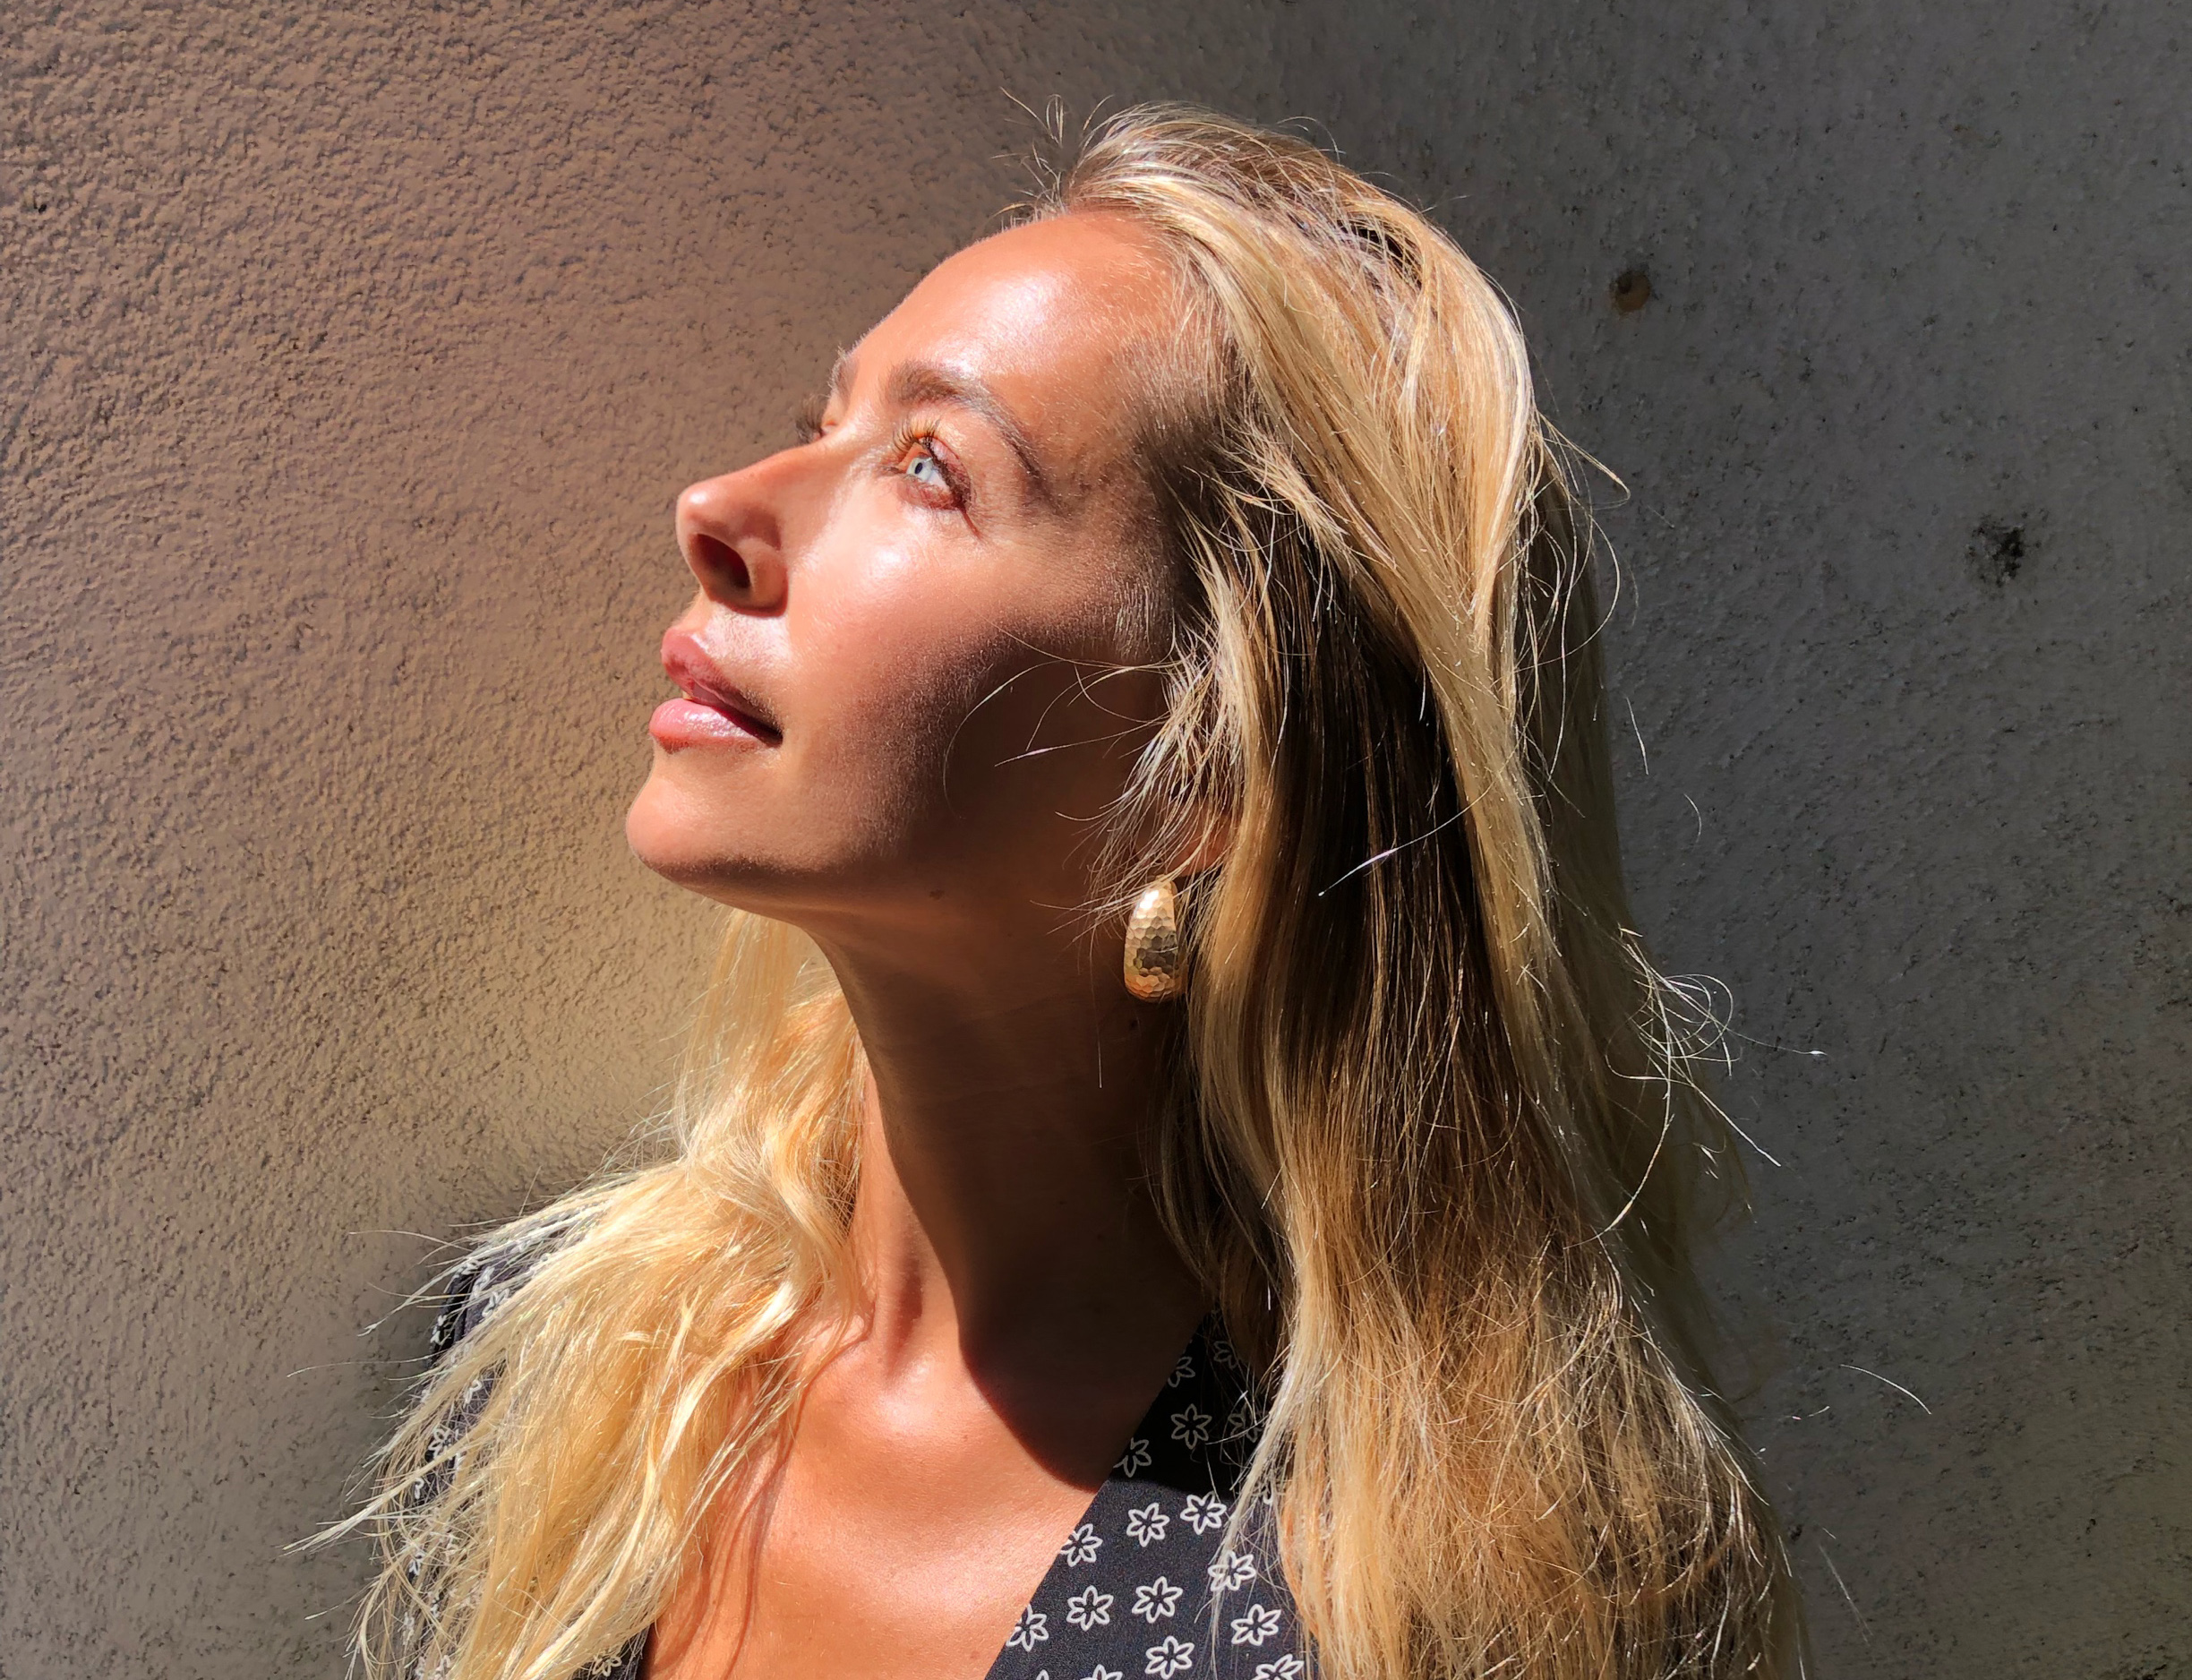 Stay Golden - What's the Golden Secret? We caught up with Jesse Golden, skincare guru and founder of The Golden Secrets to find out